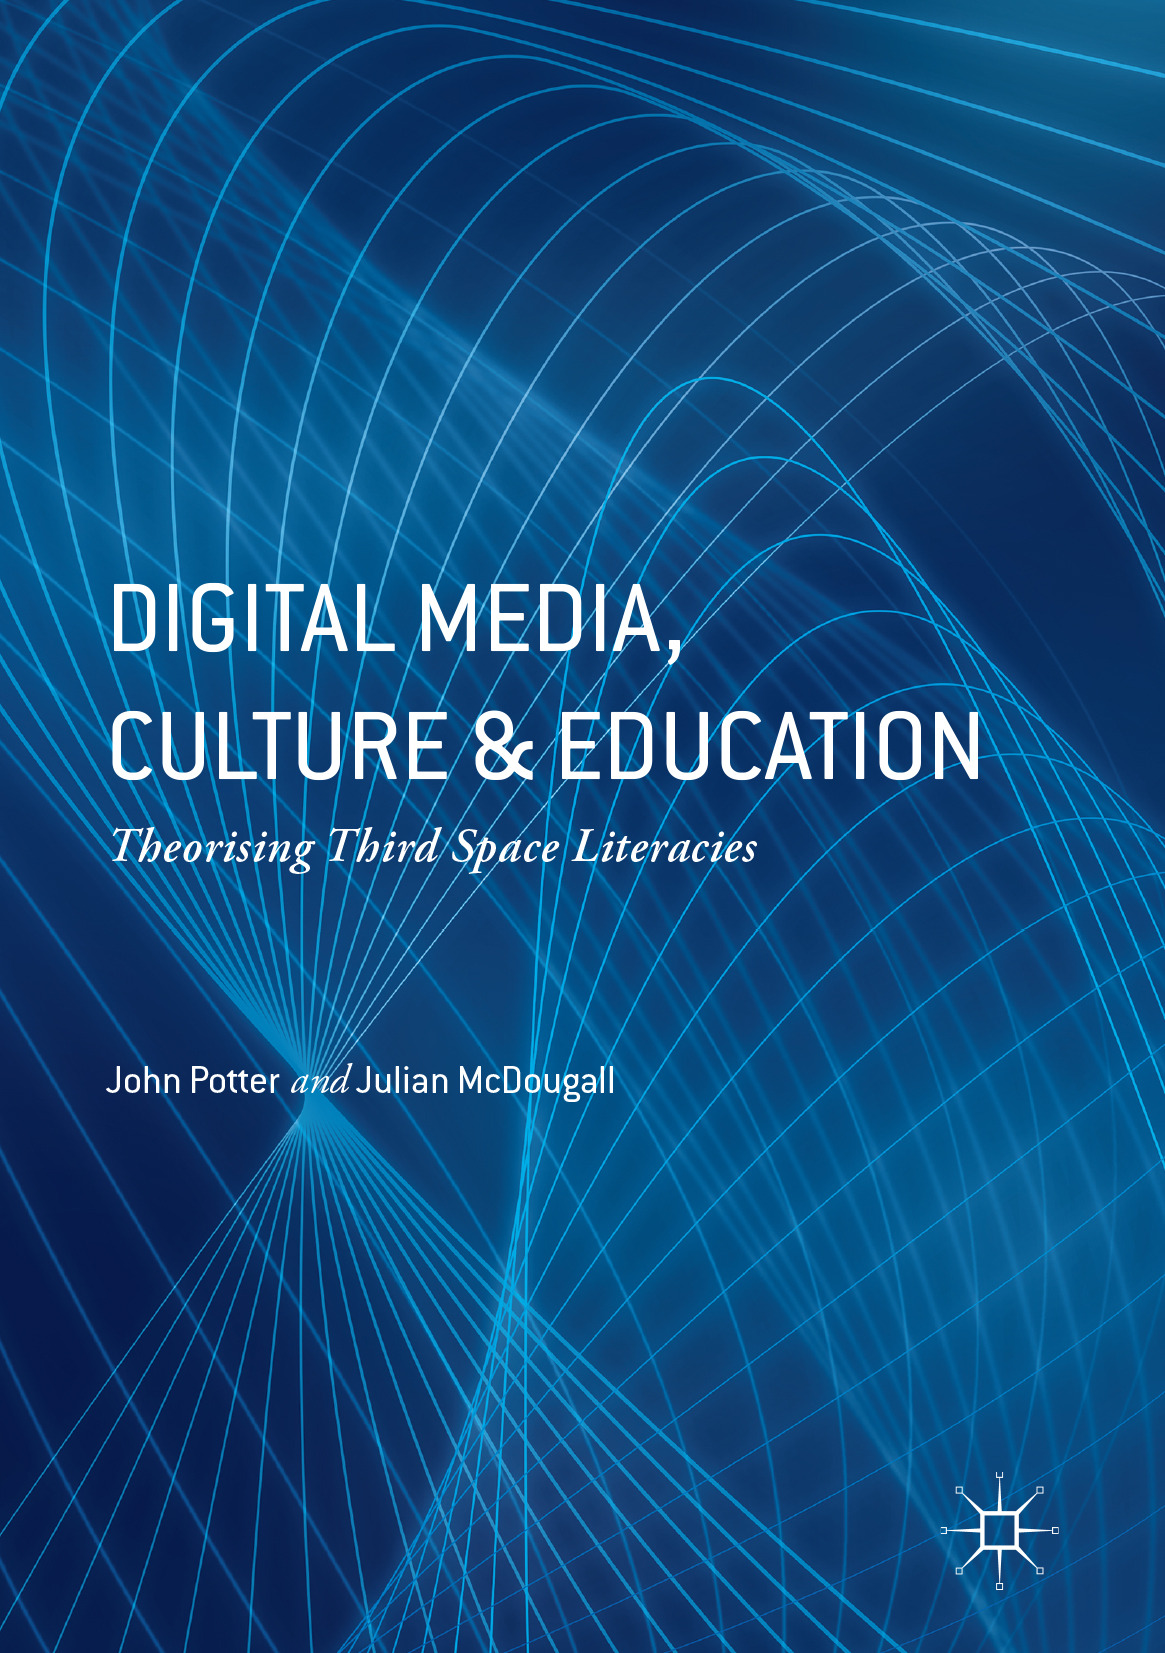 McDougall, Julian - Digital Media, Culture and Education, ebook